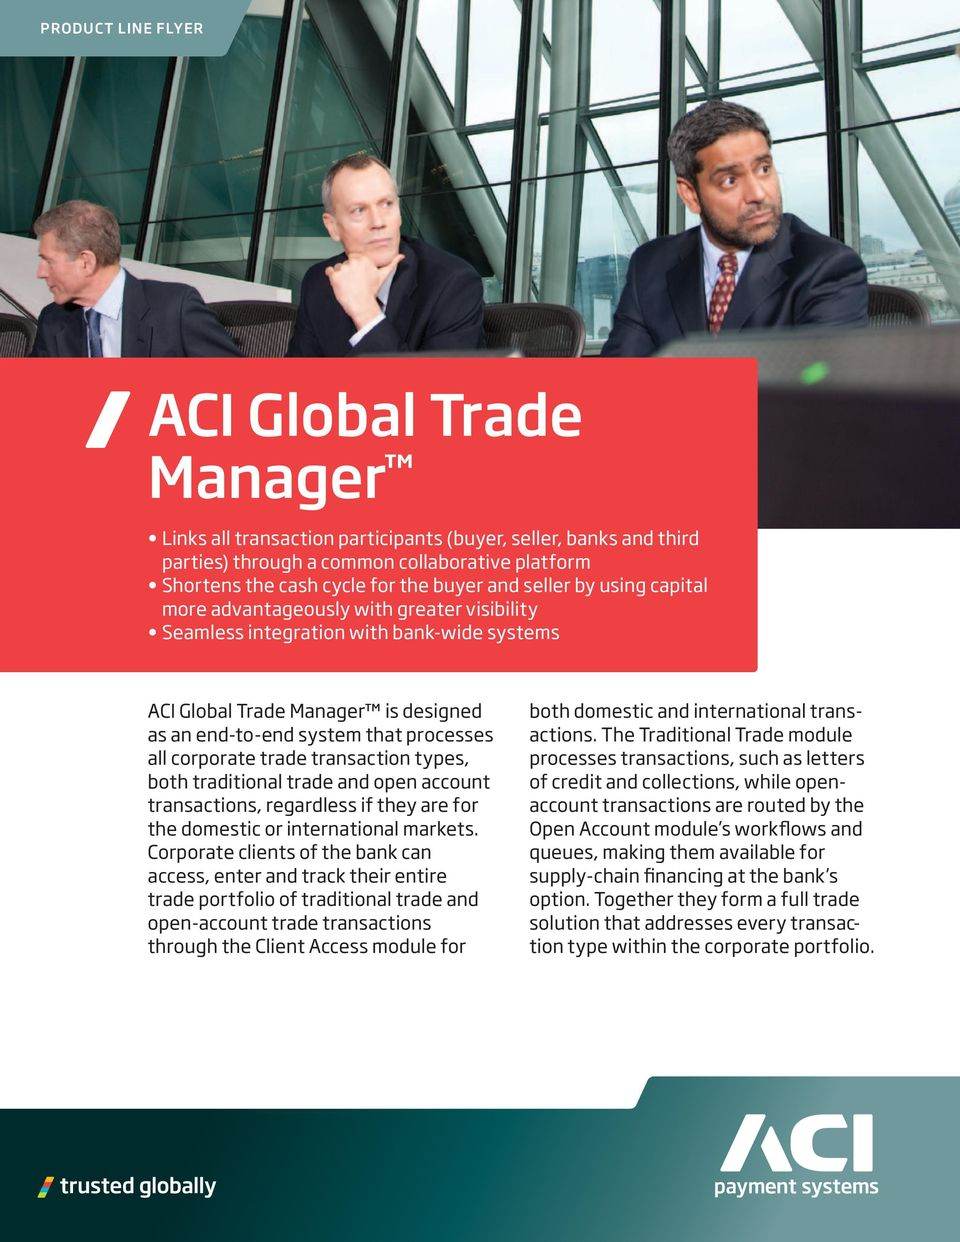 corporate trade transaction types, both traditional trade and open account transactions, regardless if they are for the domestic or international markets.